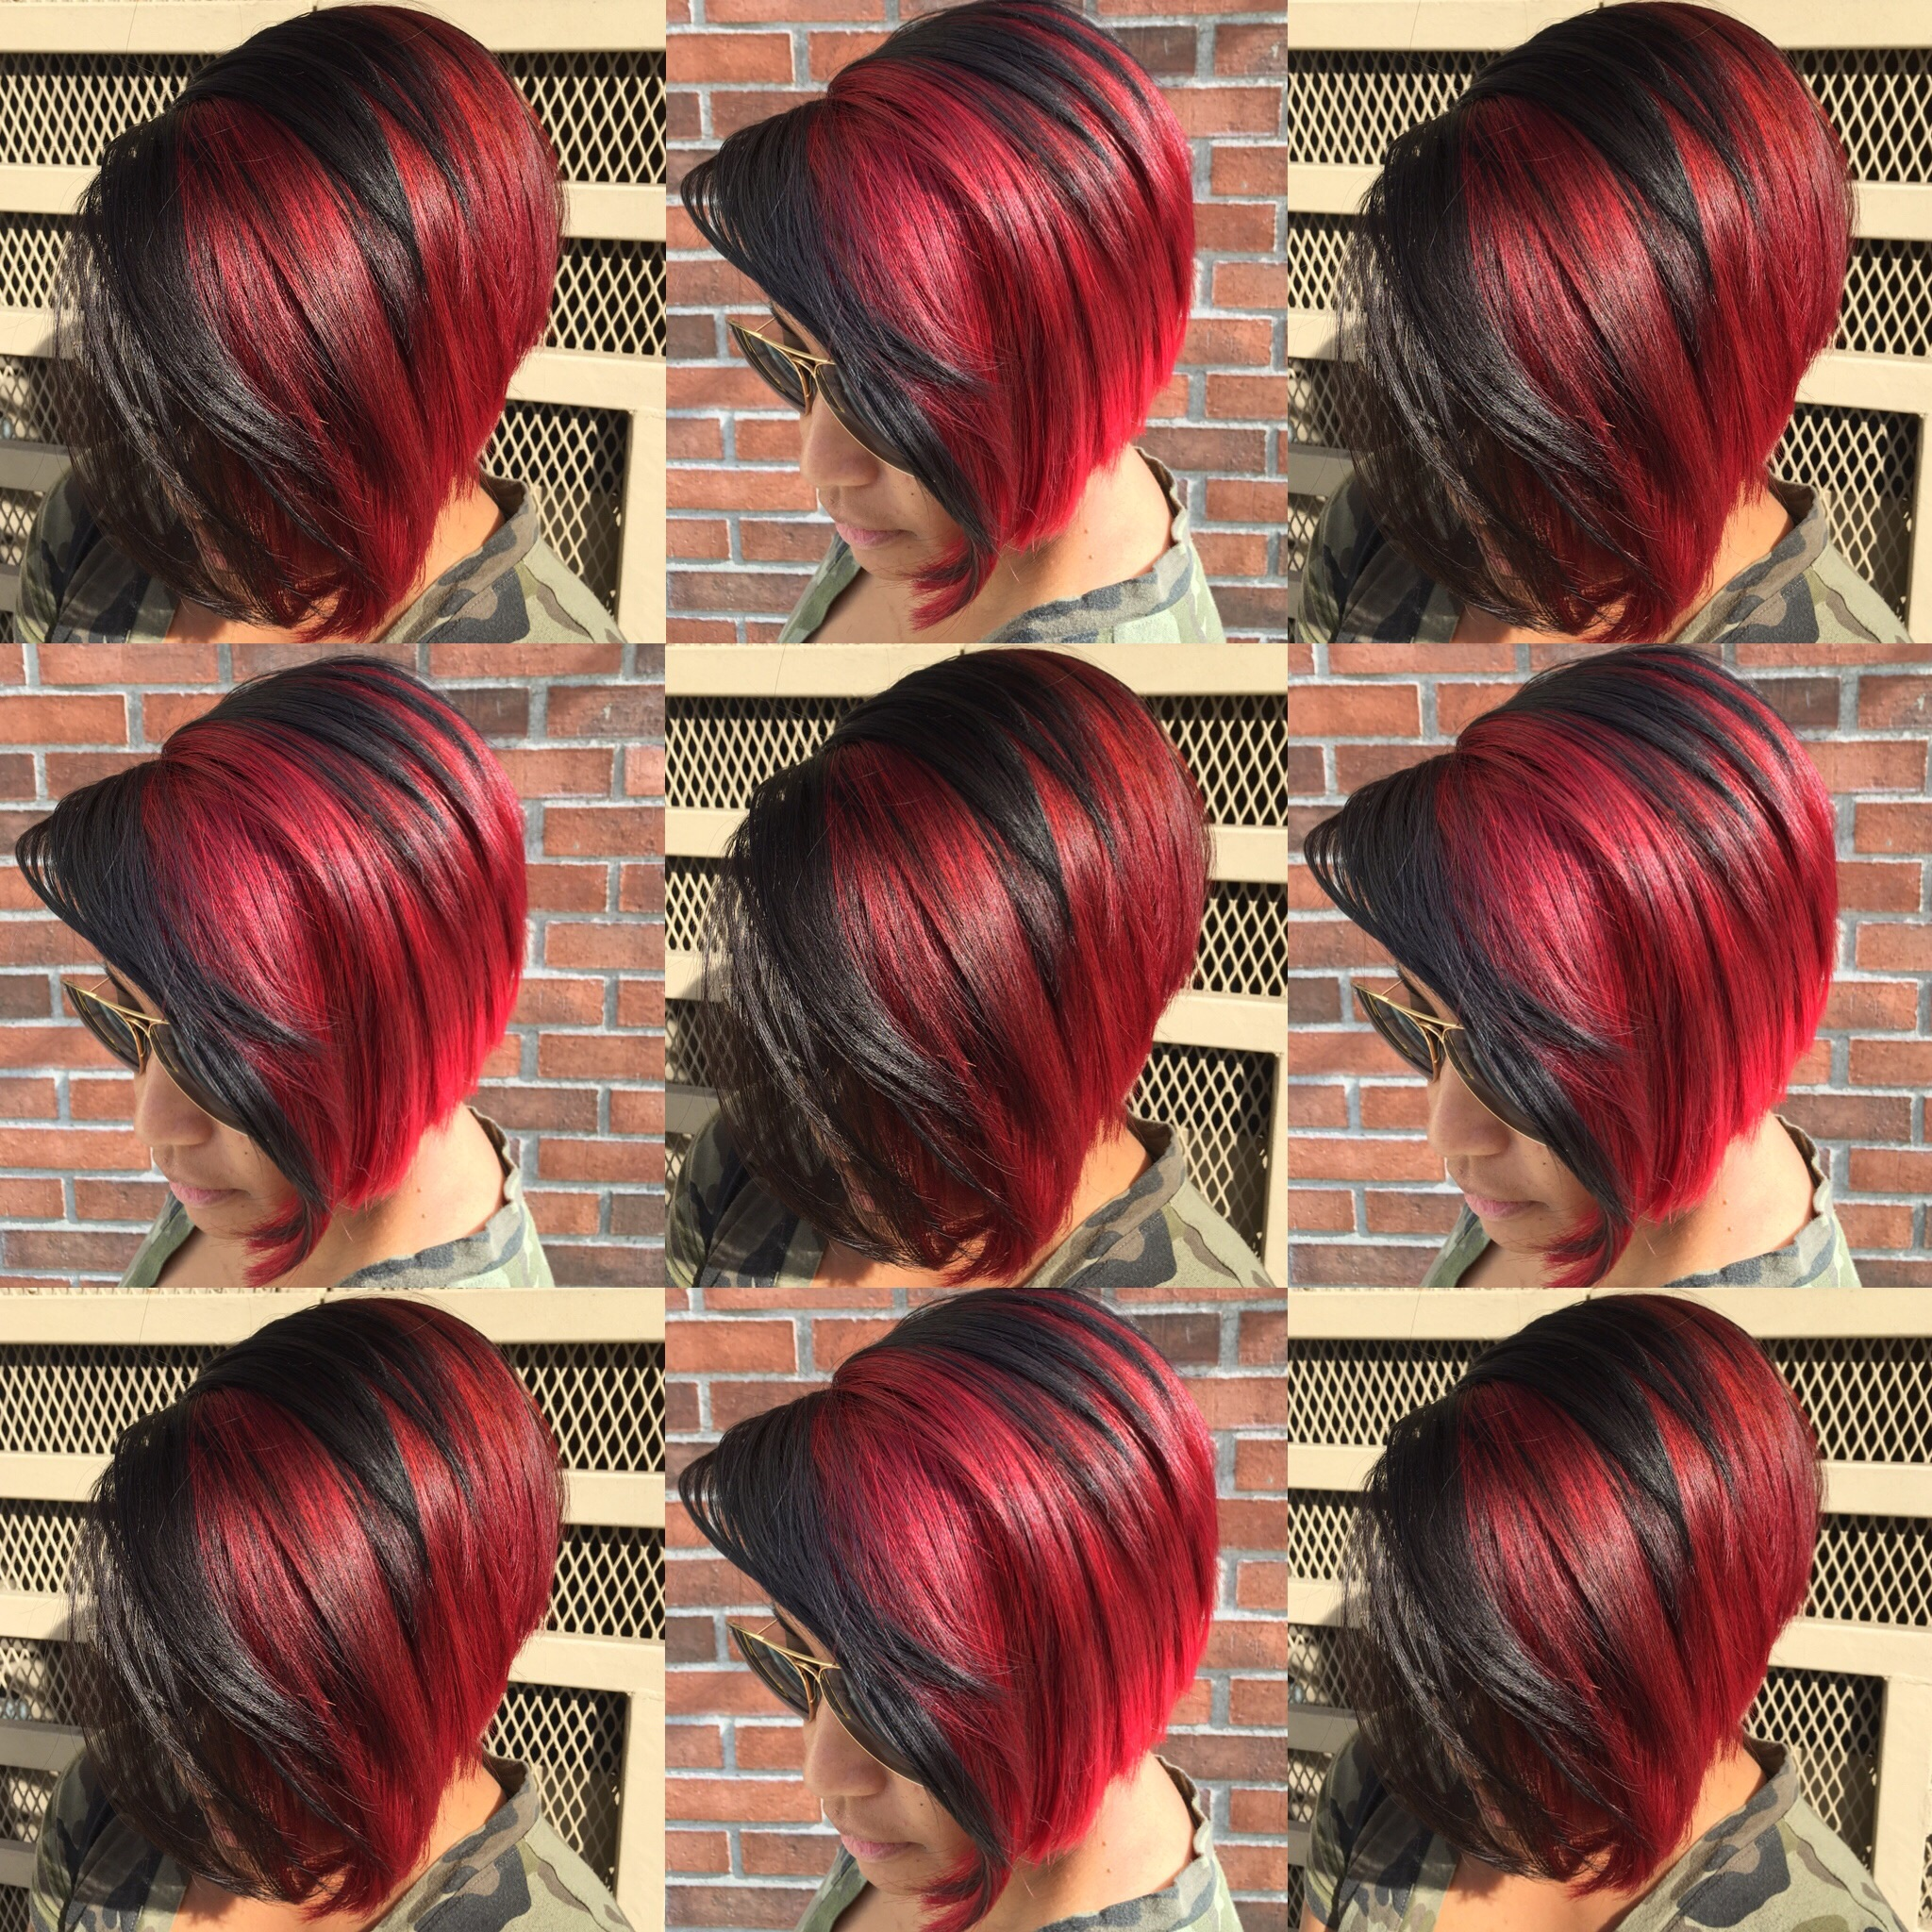 NYE Cut & Color! A great option for tonight when you have short hair... Get body, bold, and bright with your hair.  Have longevity with your cut and color for 2016....  #haircut : A Short Graduated Bob is a long lasting stylish haircut that maintains body and can be grown out to a Long Graduated Bob. #shorthair #shorthairdontcare #stylish #haircut   #haircolor : My favorite high lift reds hair color that are bold and bright, using Raspberry Red without bleaching is from @schwarzkopfusa L-89 #raspberry #red #hair #haircolorist #colorist #schwarzkopf #sherryyoungestyle